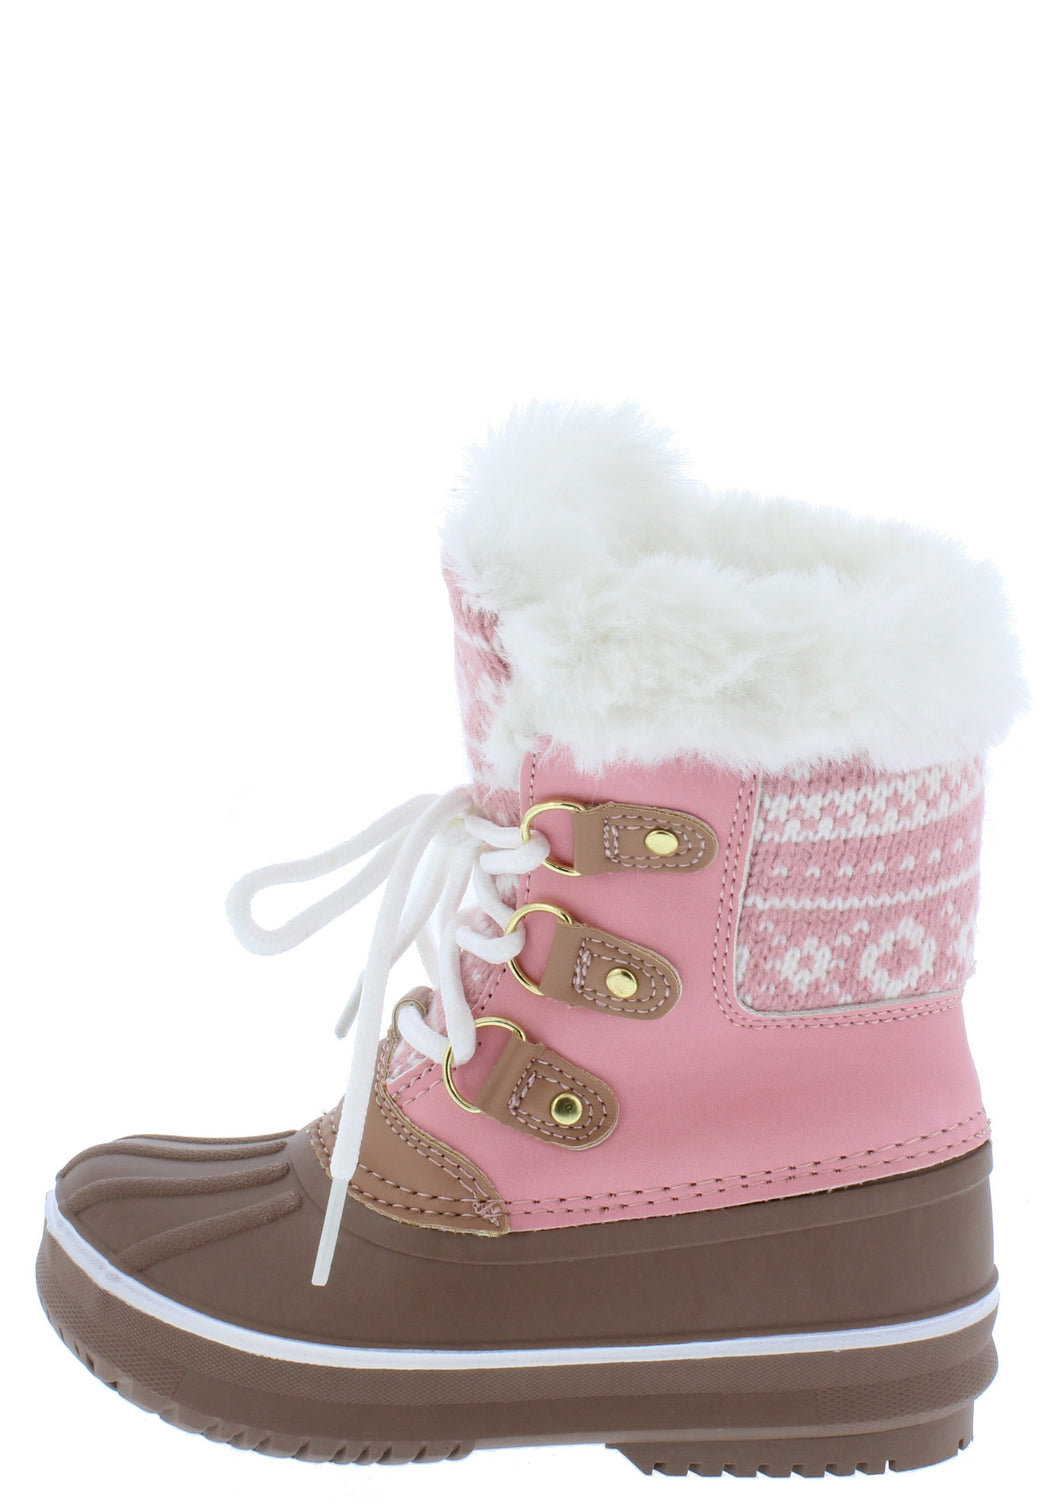 Value84k Pink Faux Fur Lace Up Kids Snow Boot - Wholesale Fashion Shoes ?id=17423004631084